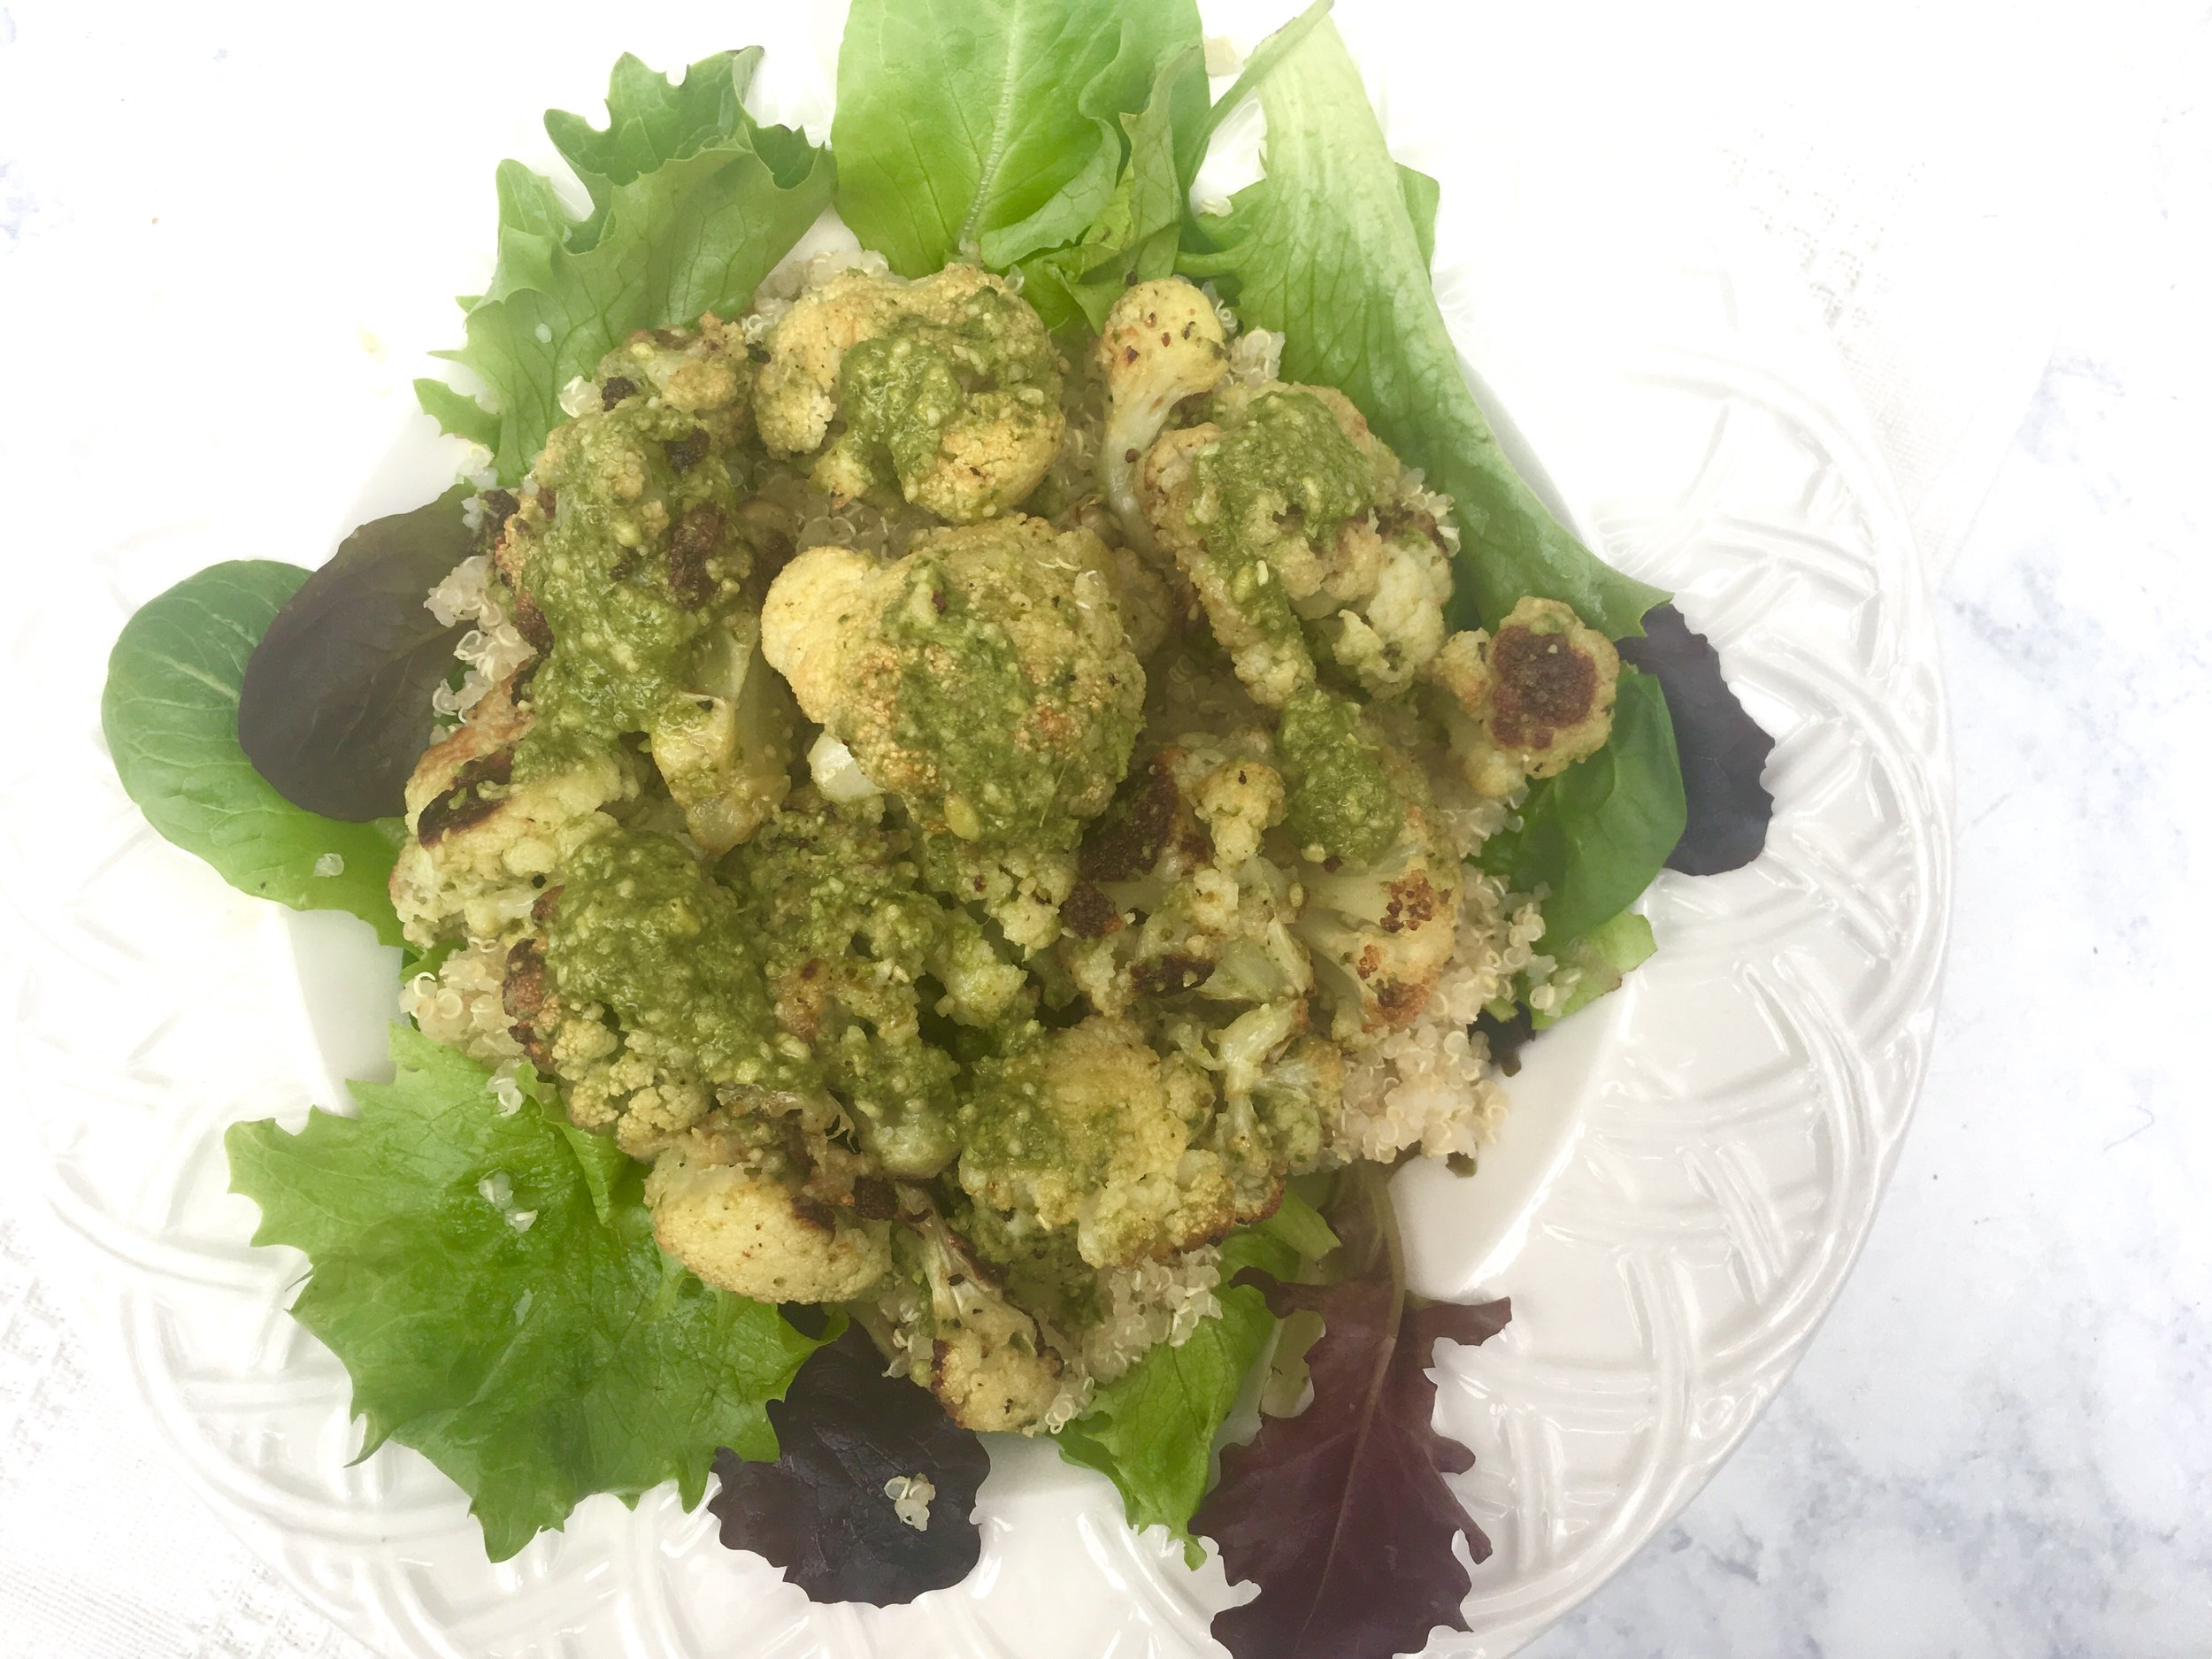 RFSpring17 Roasted Cauliflower with Pesto and Quinoa